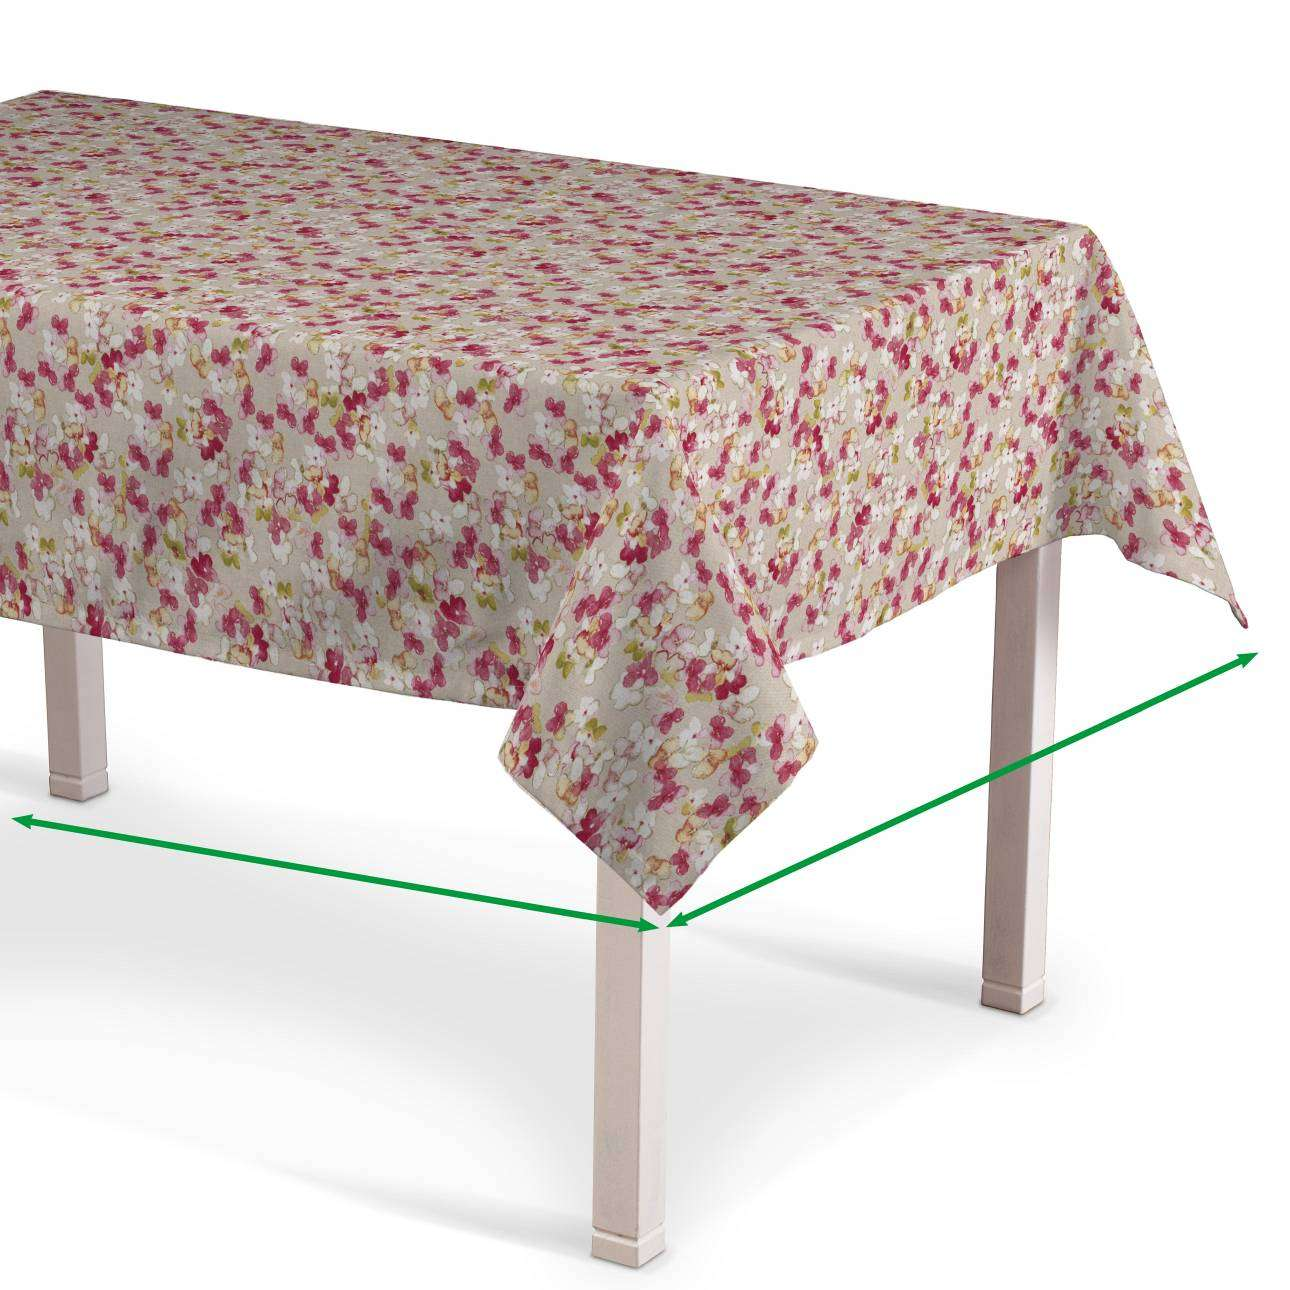 Rectangular tablecloth in collection Londres, fabric: 140-47